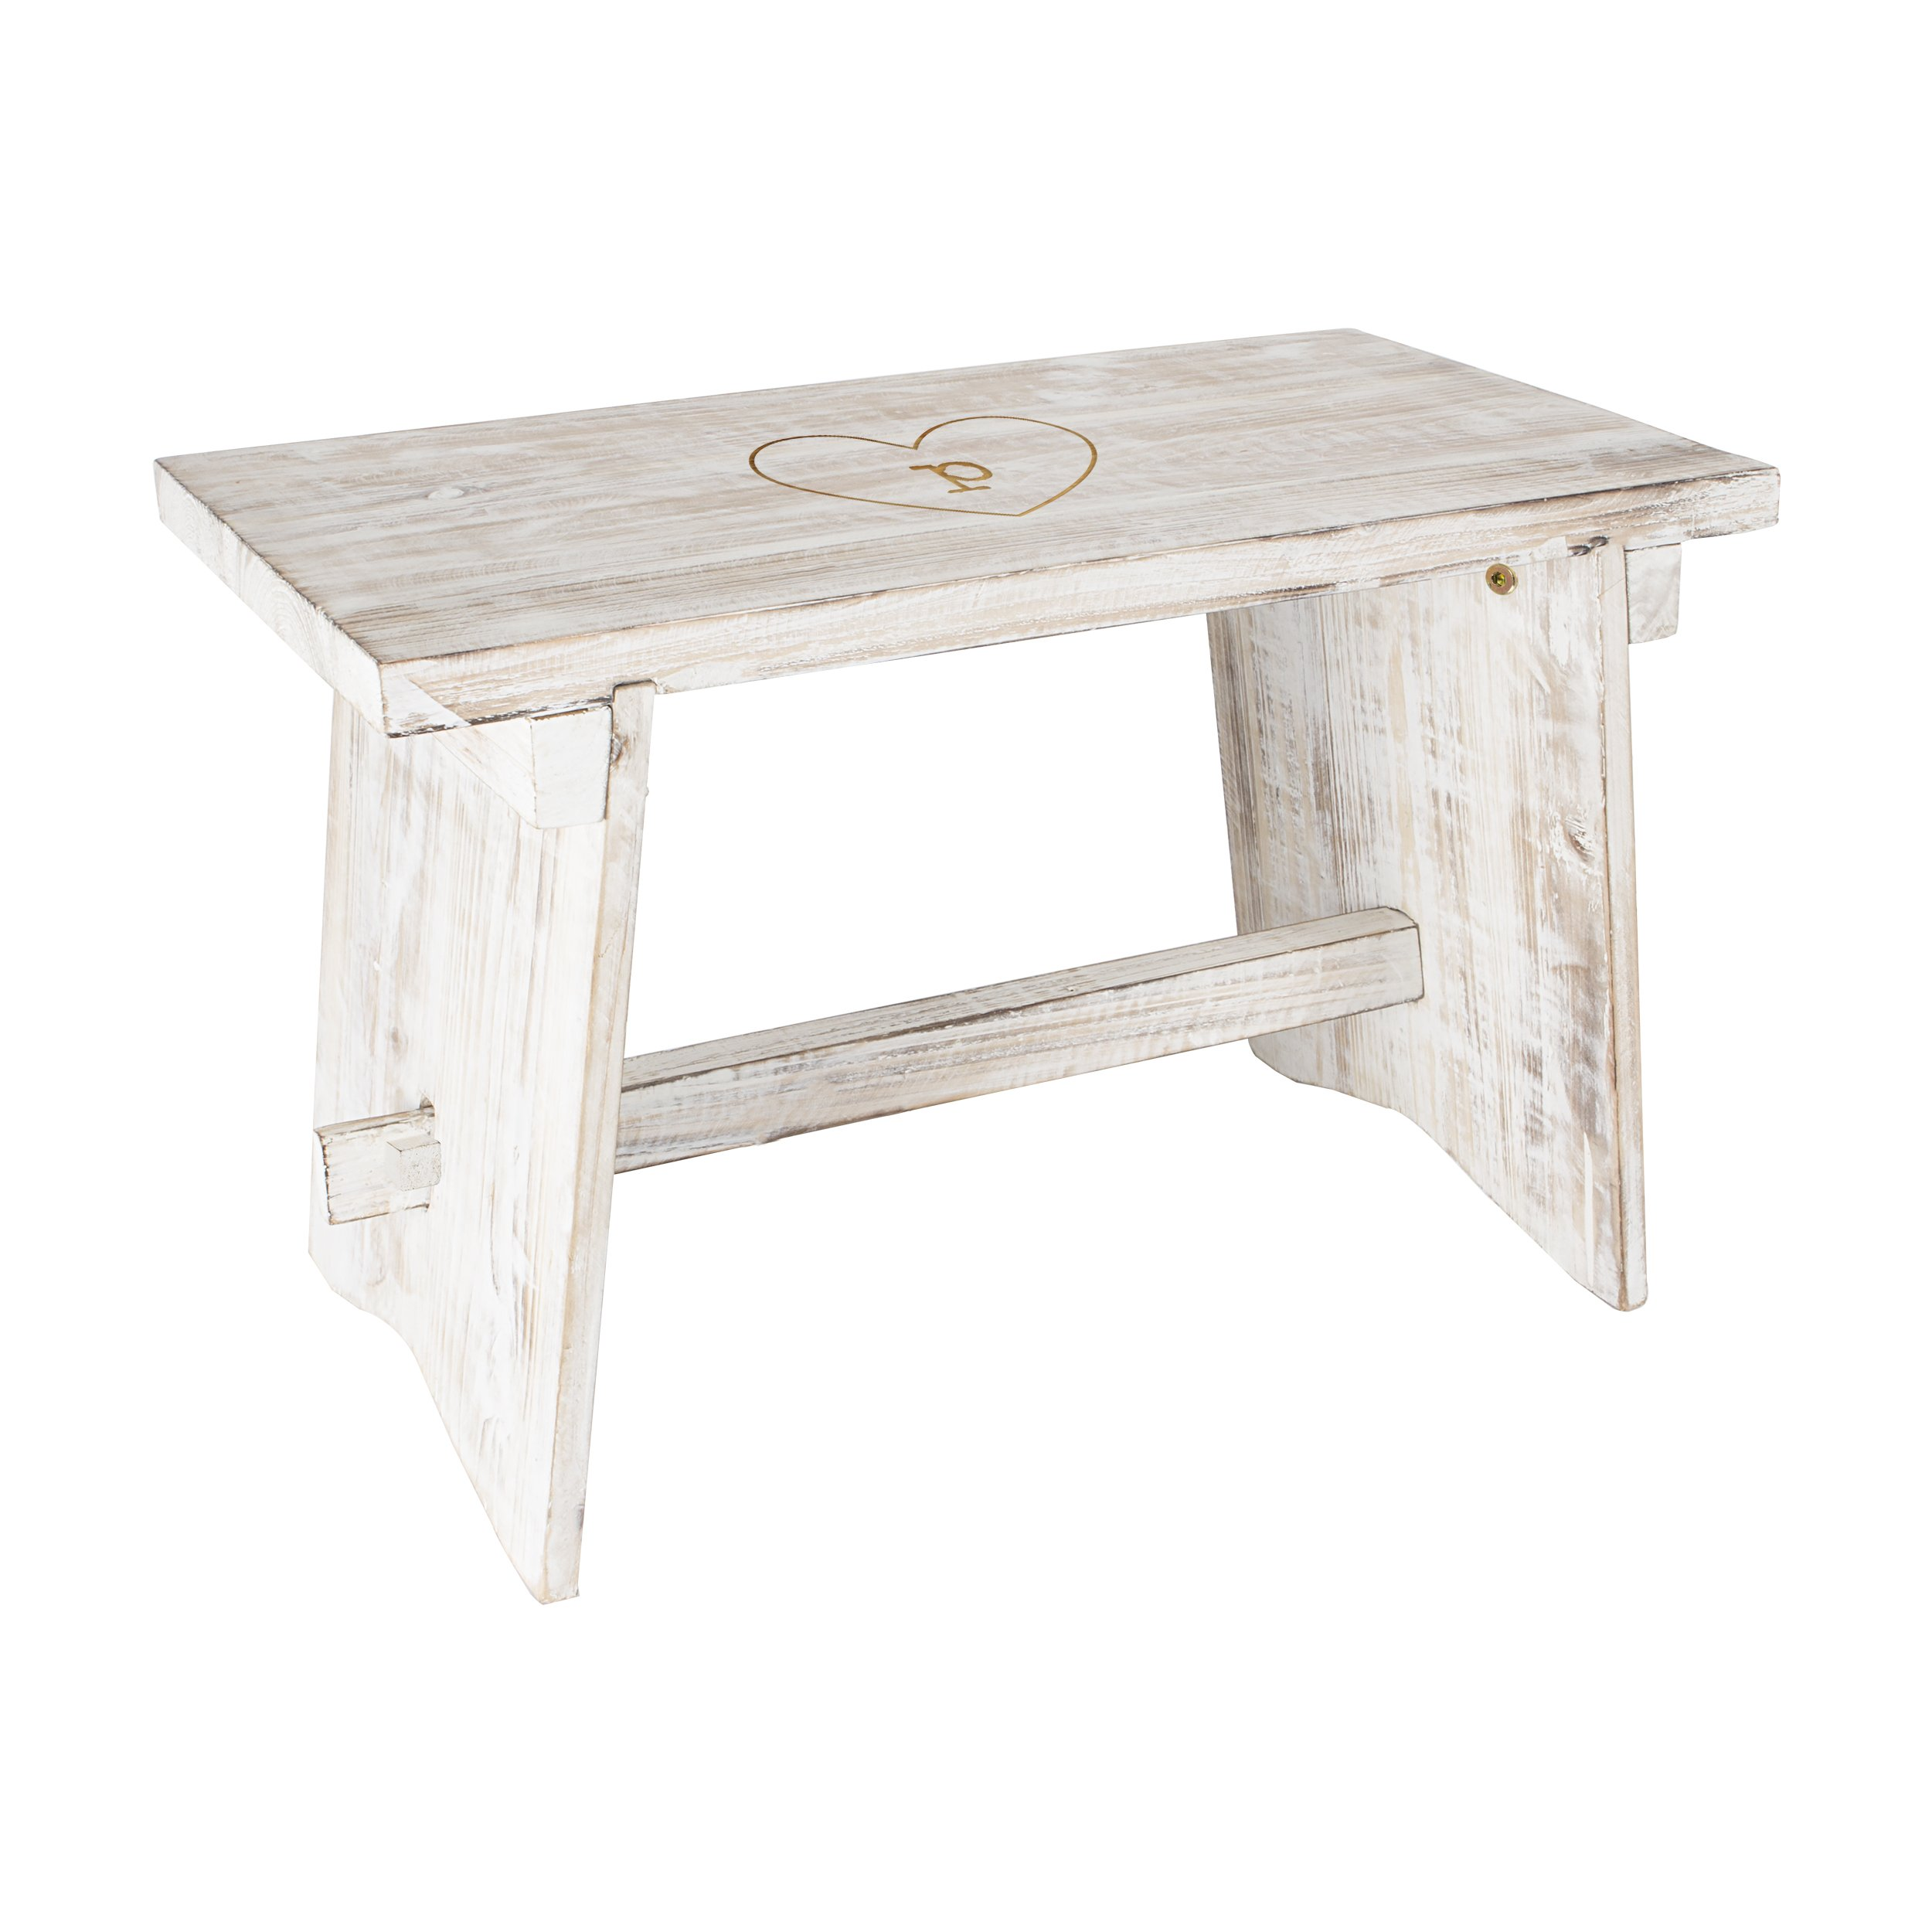 Cathy's Concepts HRT-3950-P Personalized Heart Rustic Wooden Guestbook Bench